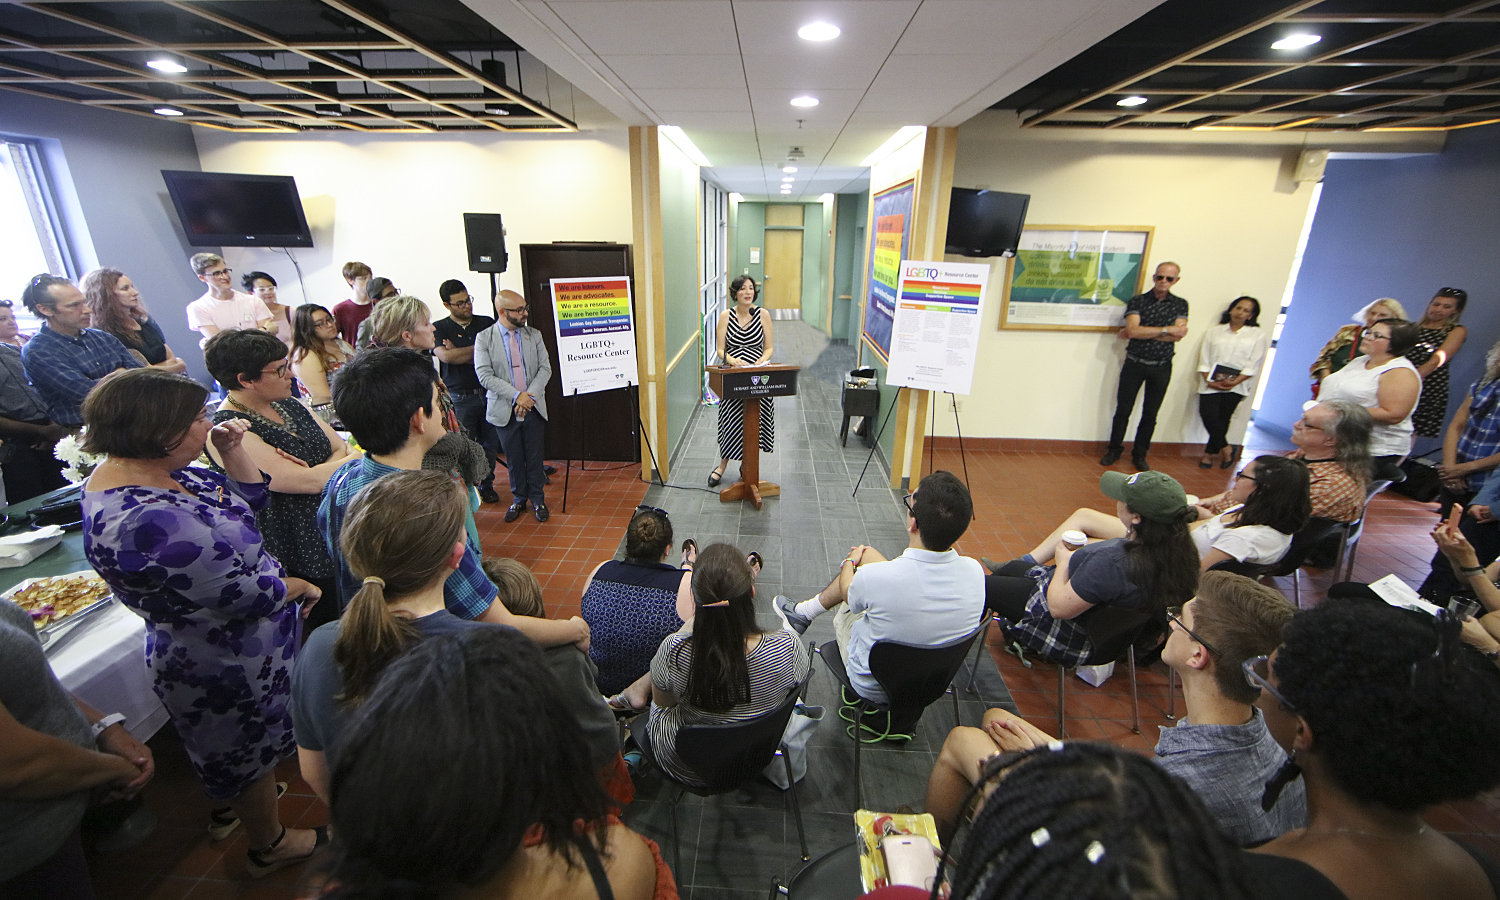 Assistant Professor of Women's Studies Michelle Martin-Baron speaks to members of the HWS Community at the opening of the new LGBTQ+ Resource Center in DeCordova Hall.